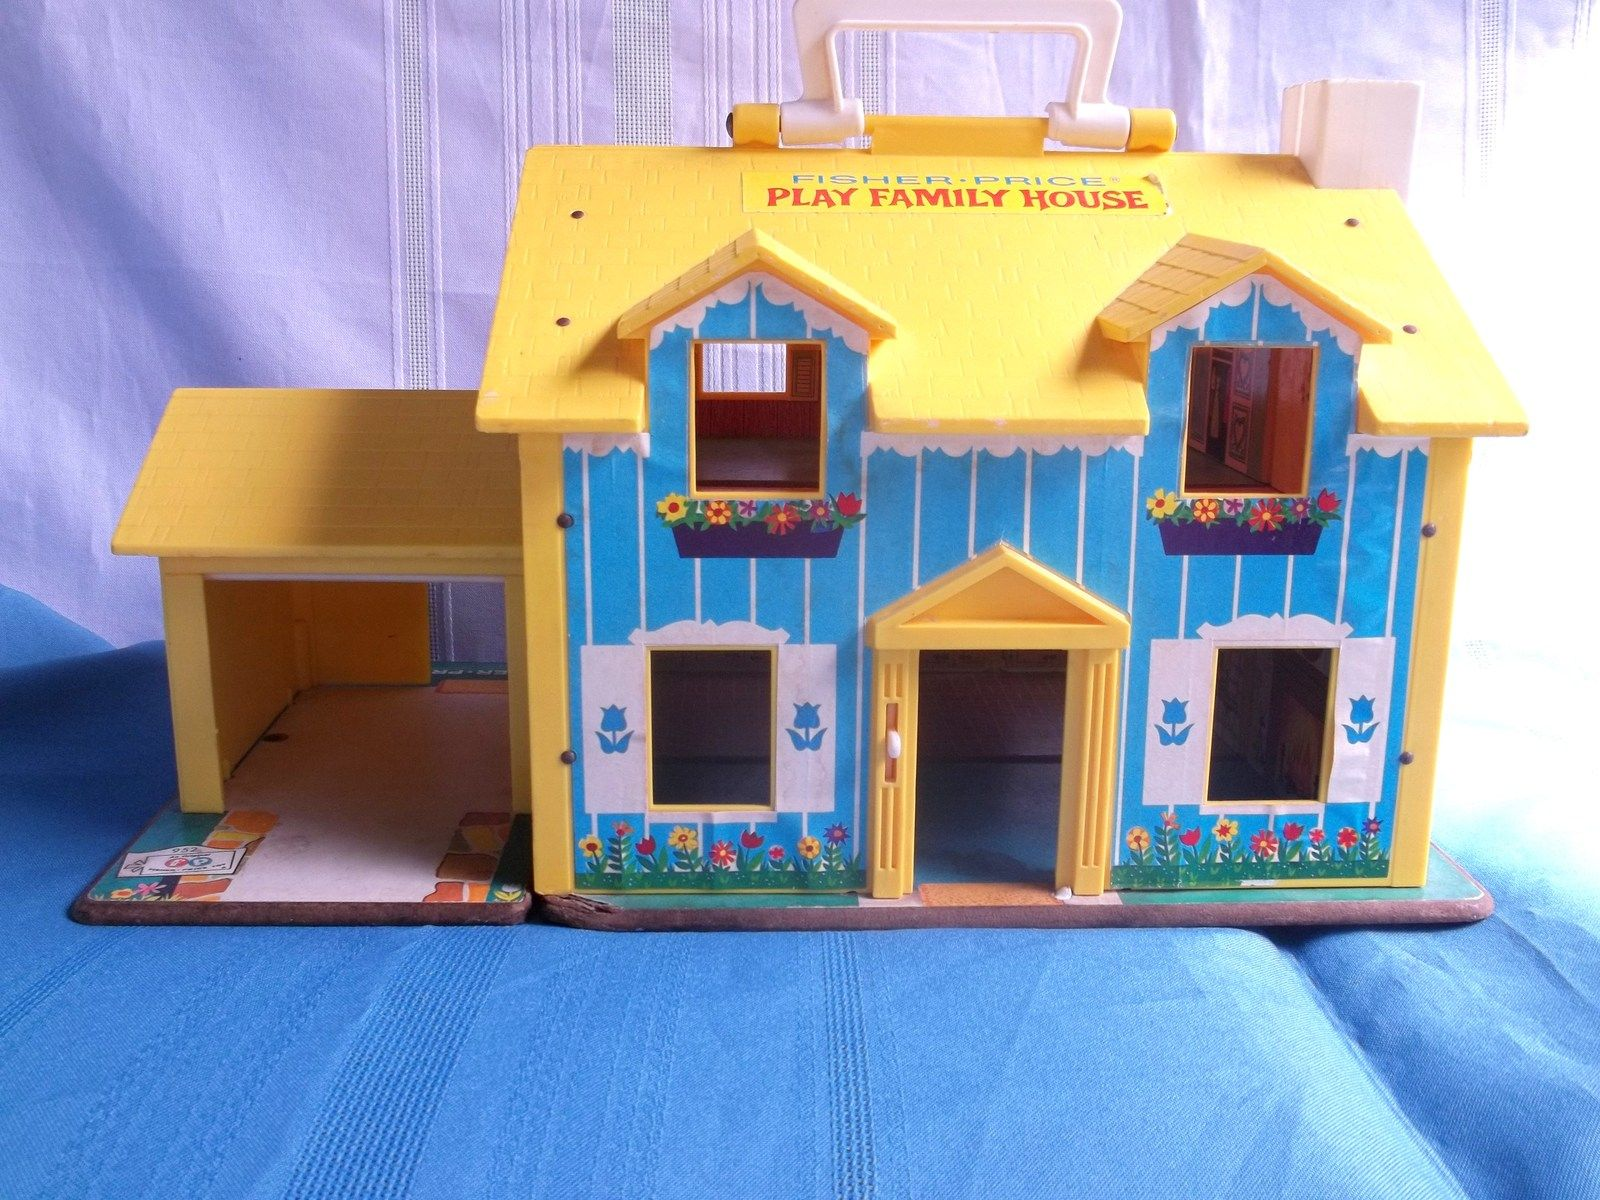 Vintage FisherPrice Play Family House 952 7.00 Play